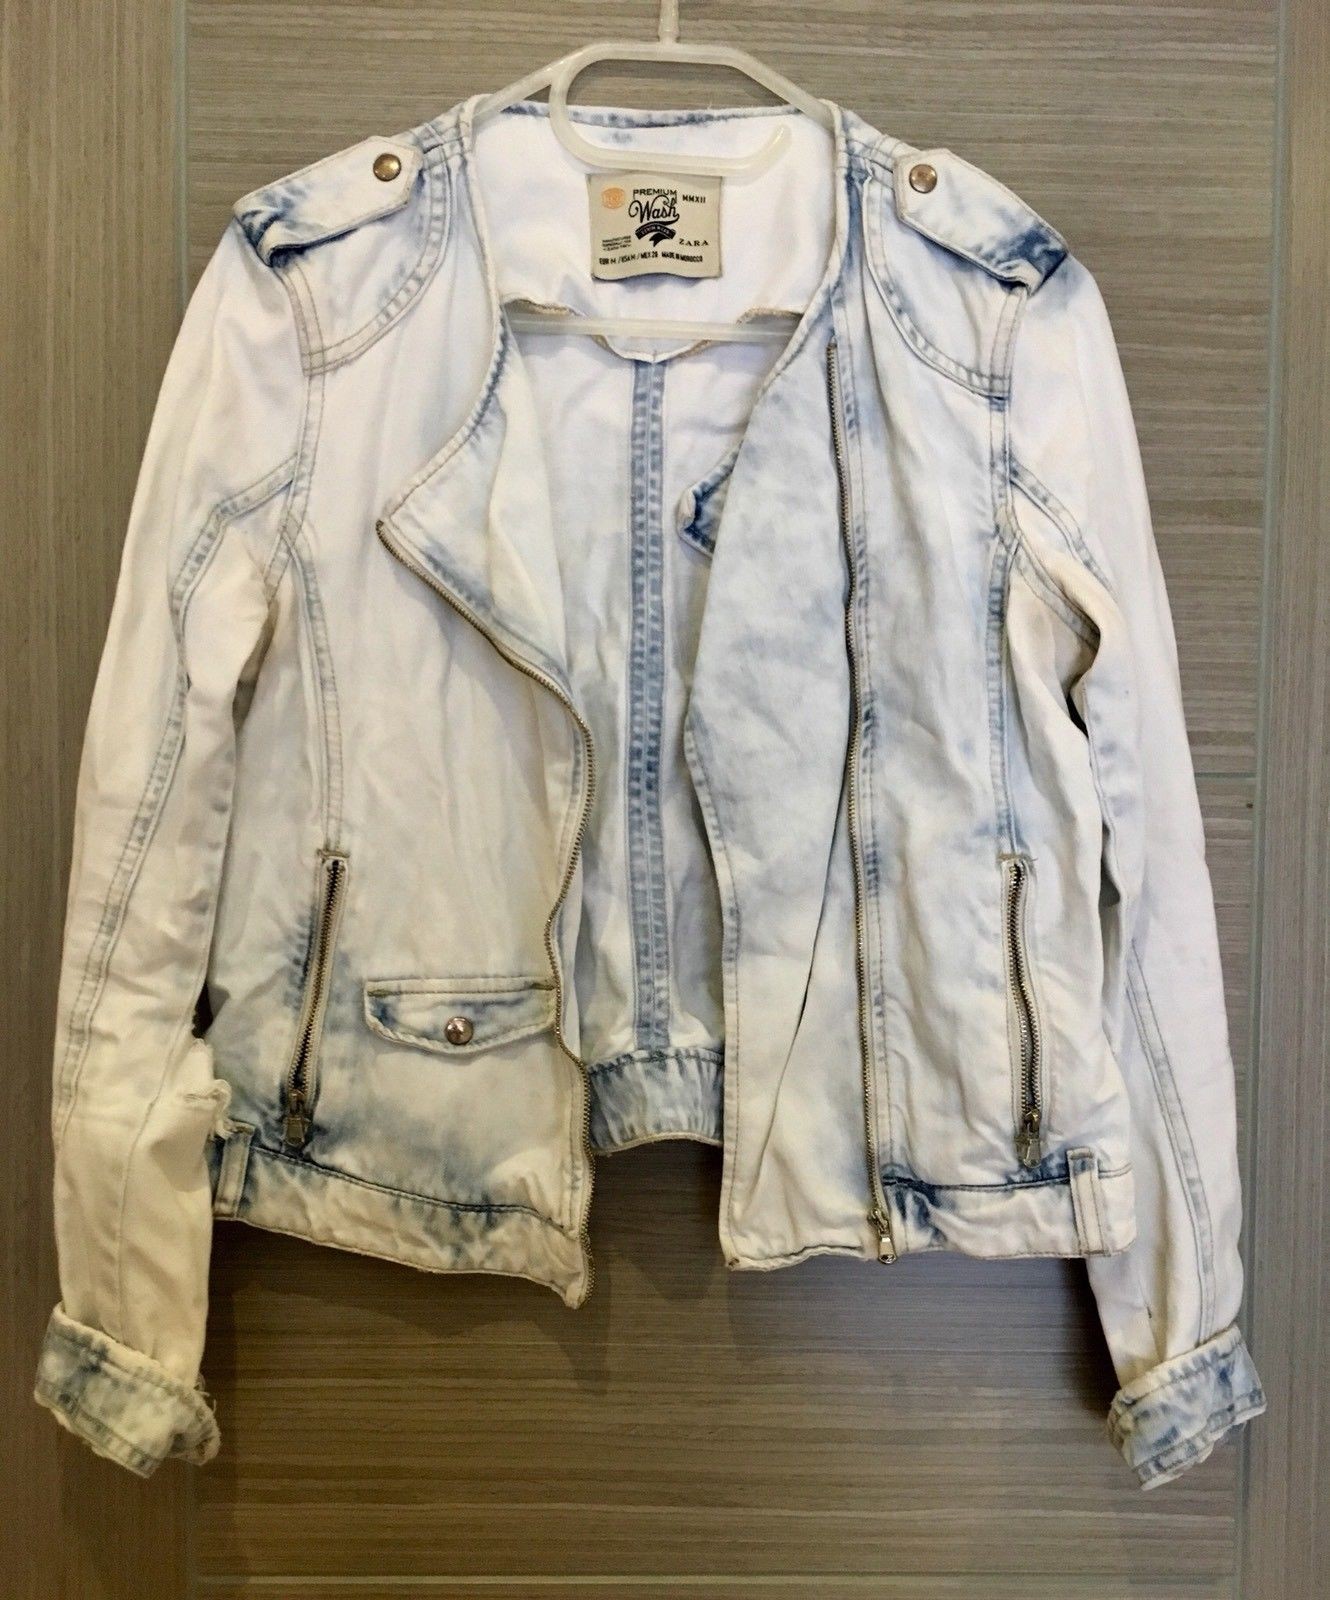 c53db0dcd Details about G-star raw womens denim jacket size M medium blue zip ...